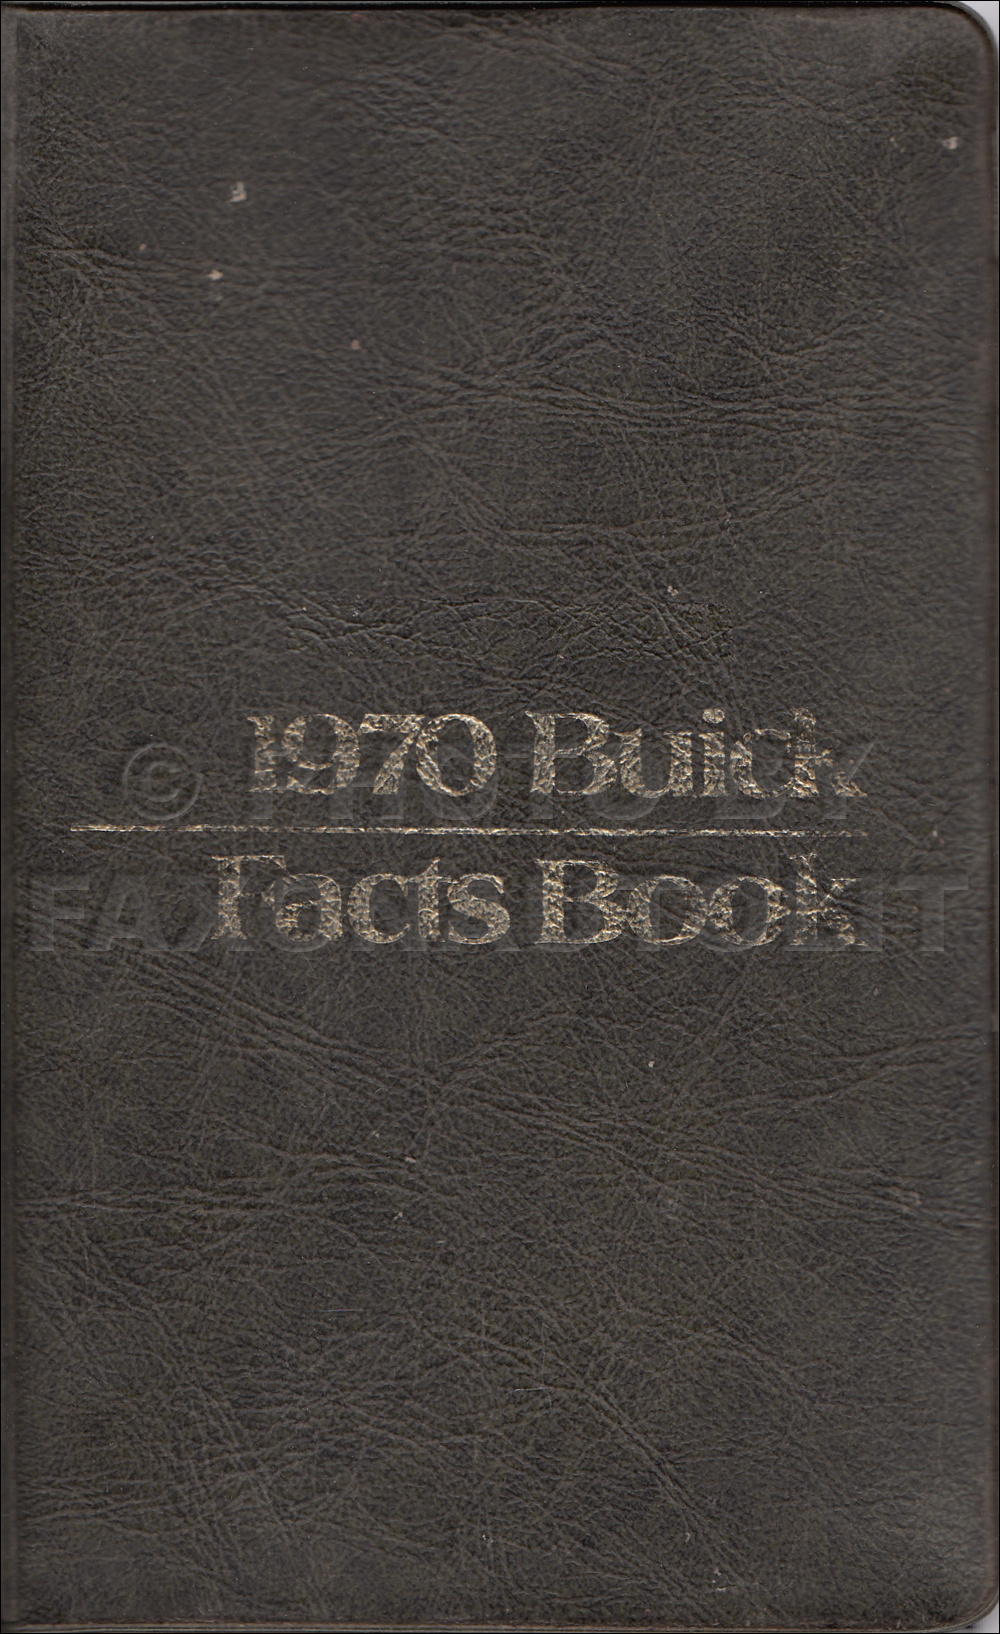 1970 Buick Facts Book Original